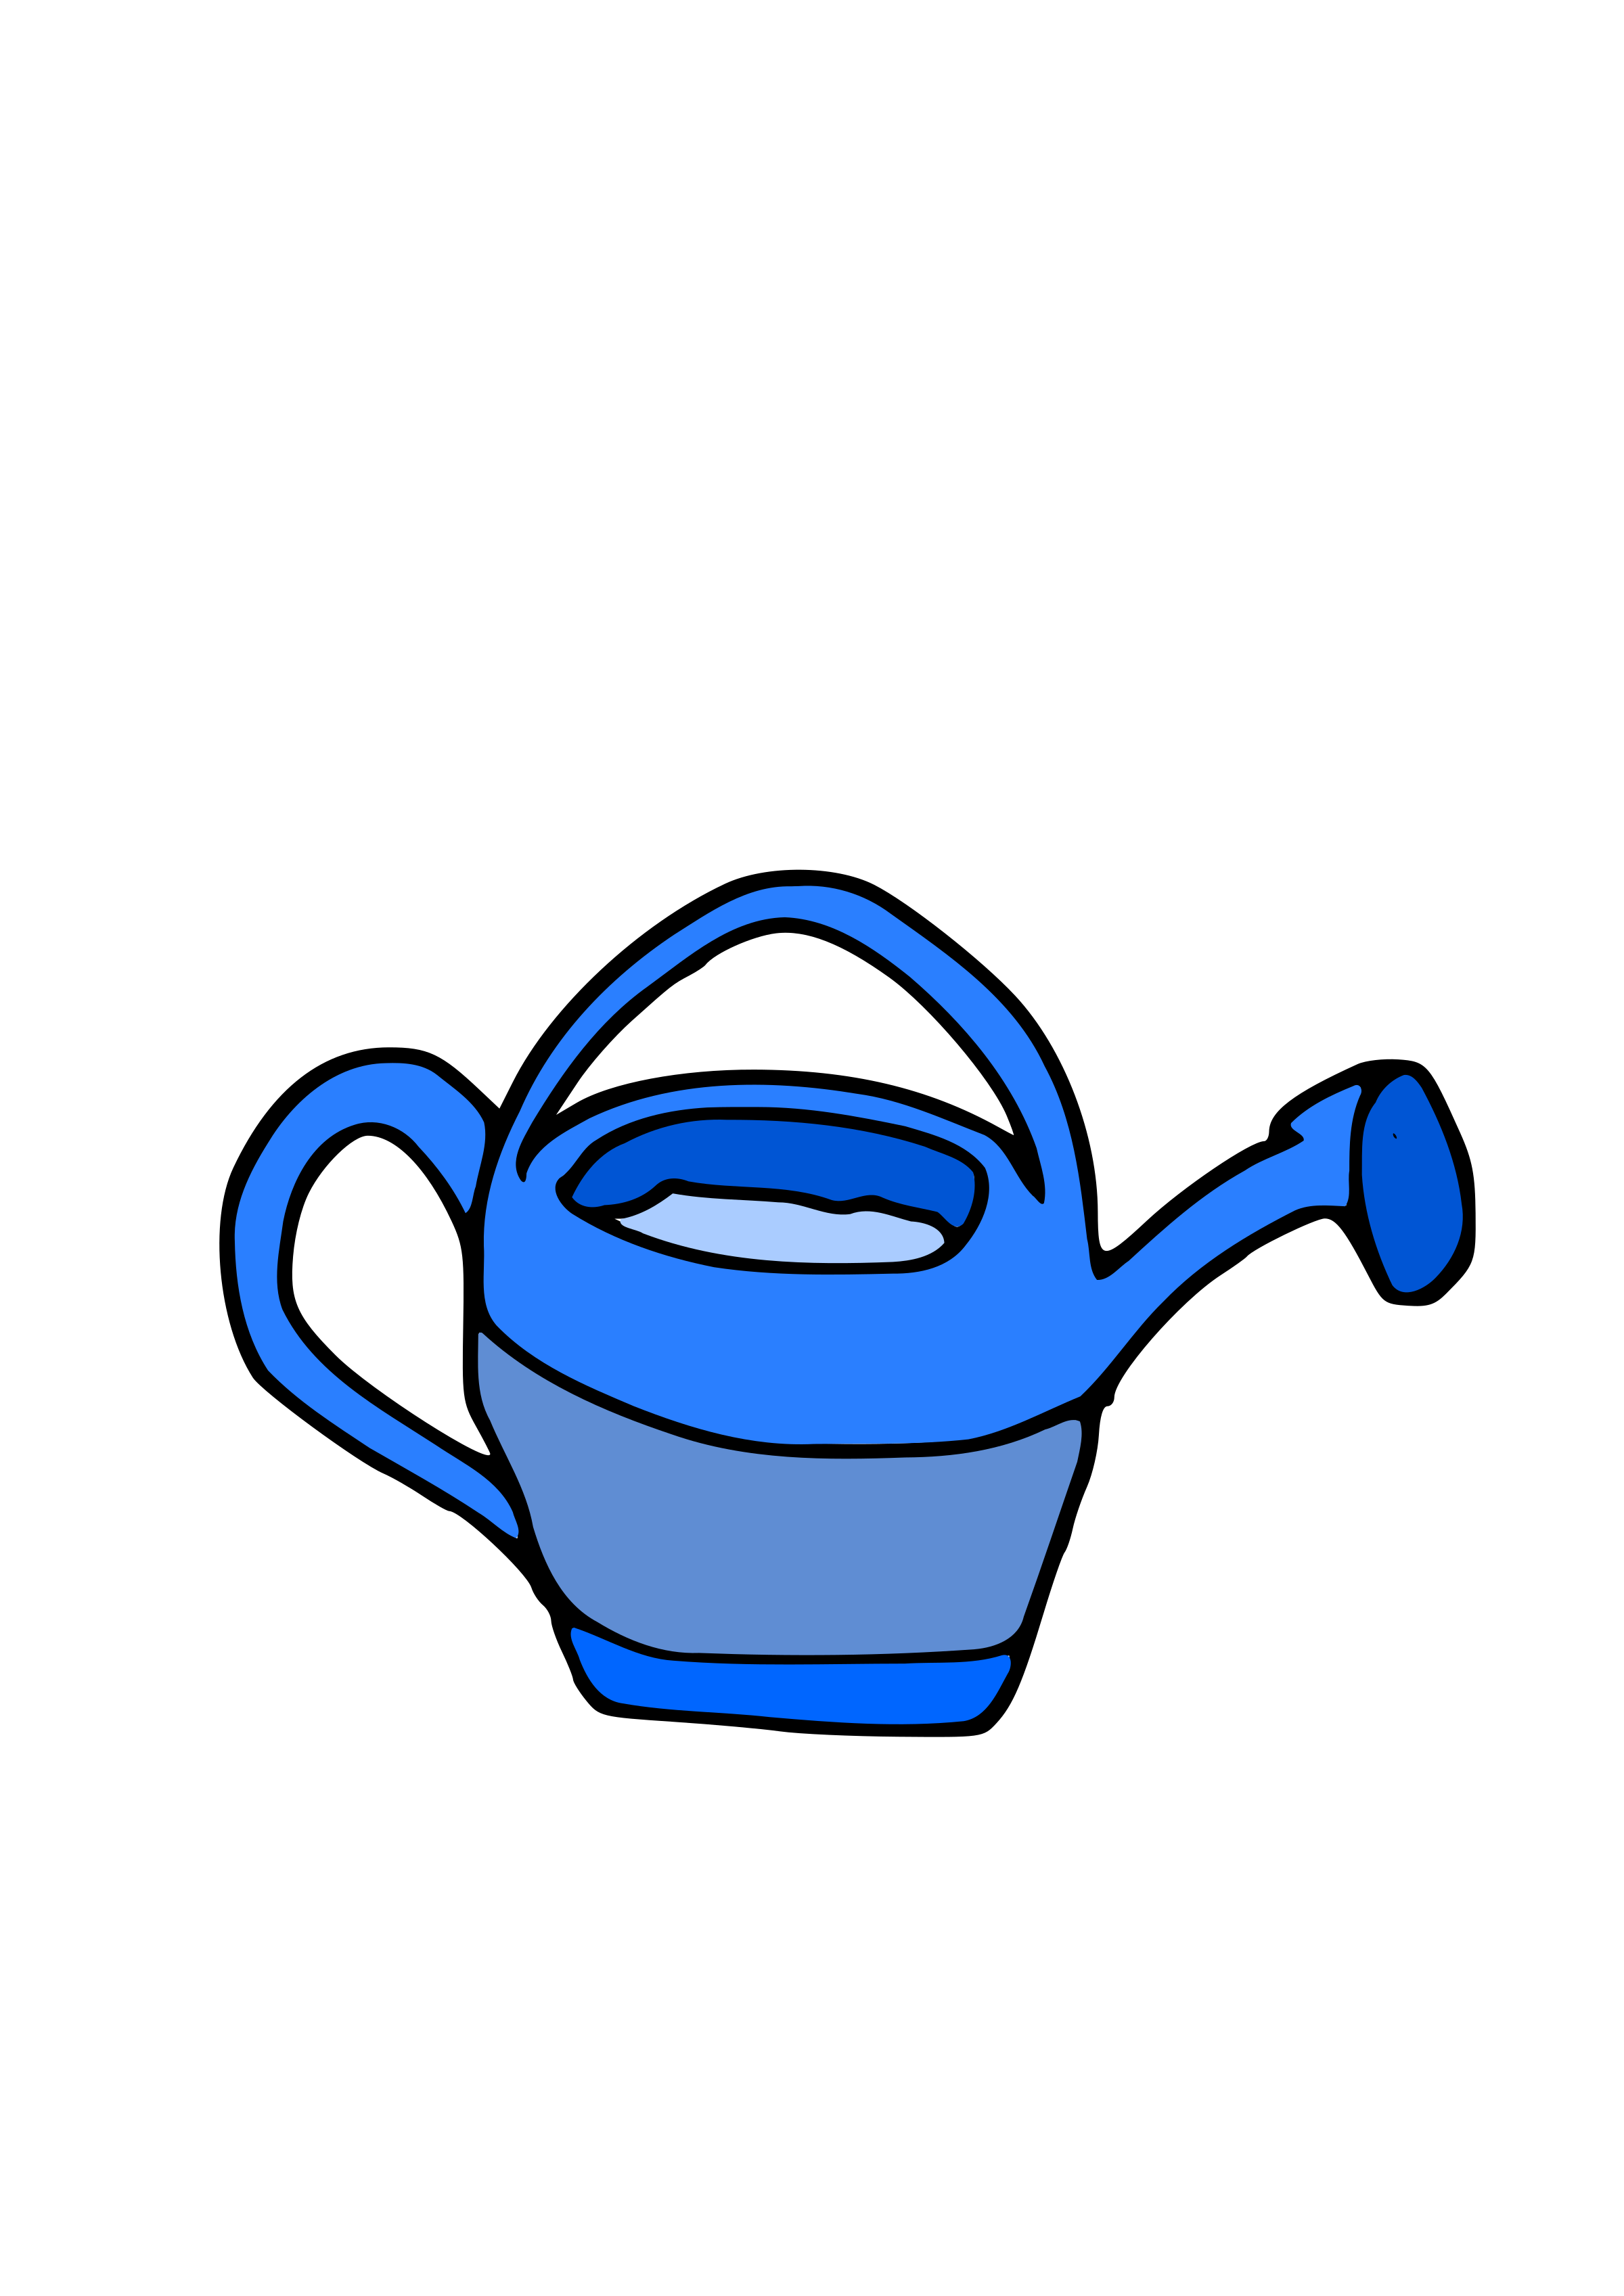 C regador big image. Blue clipart watering can